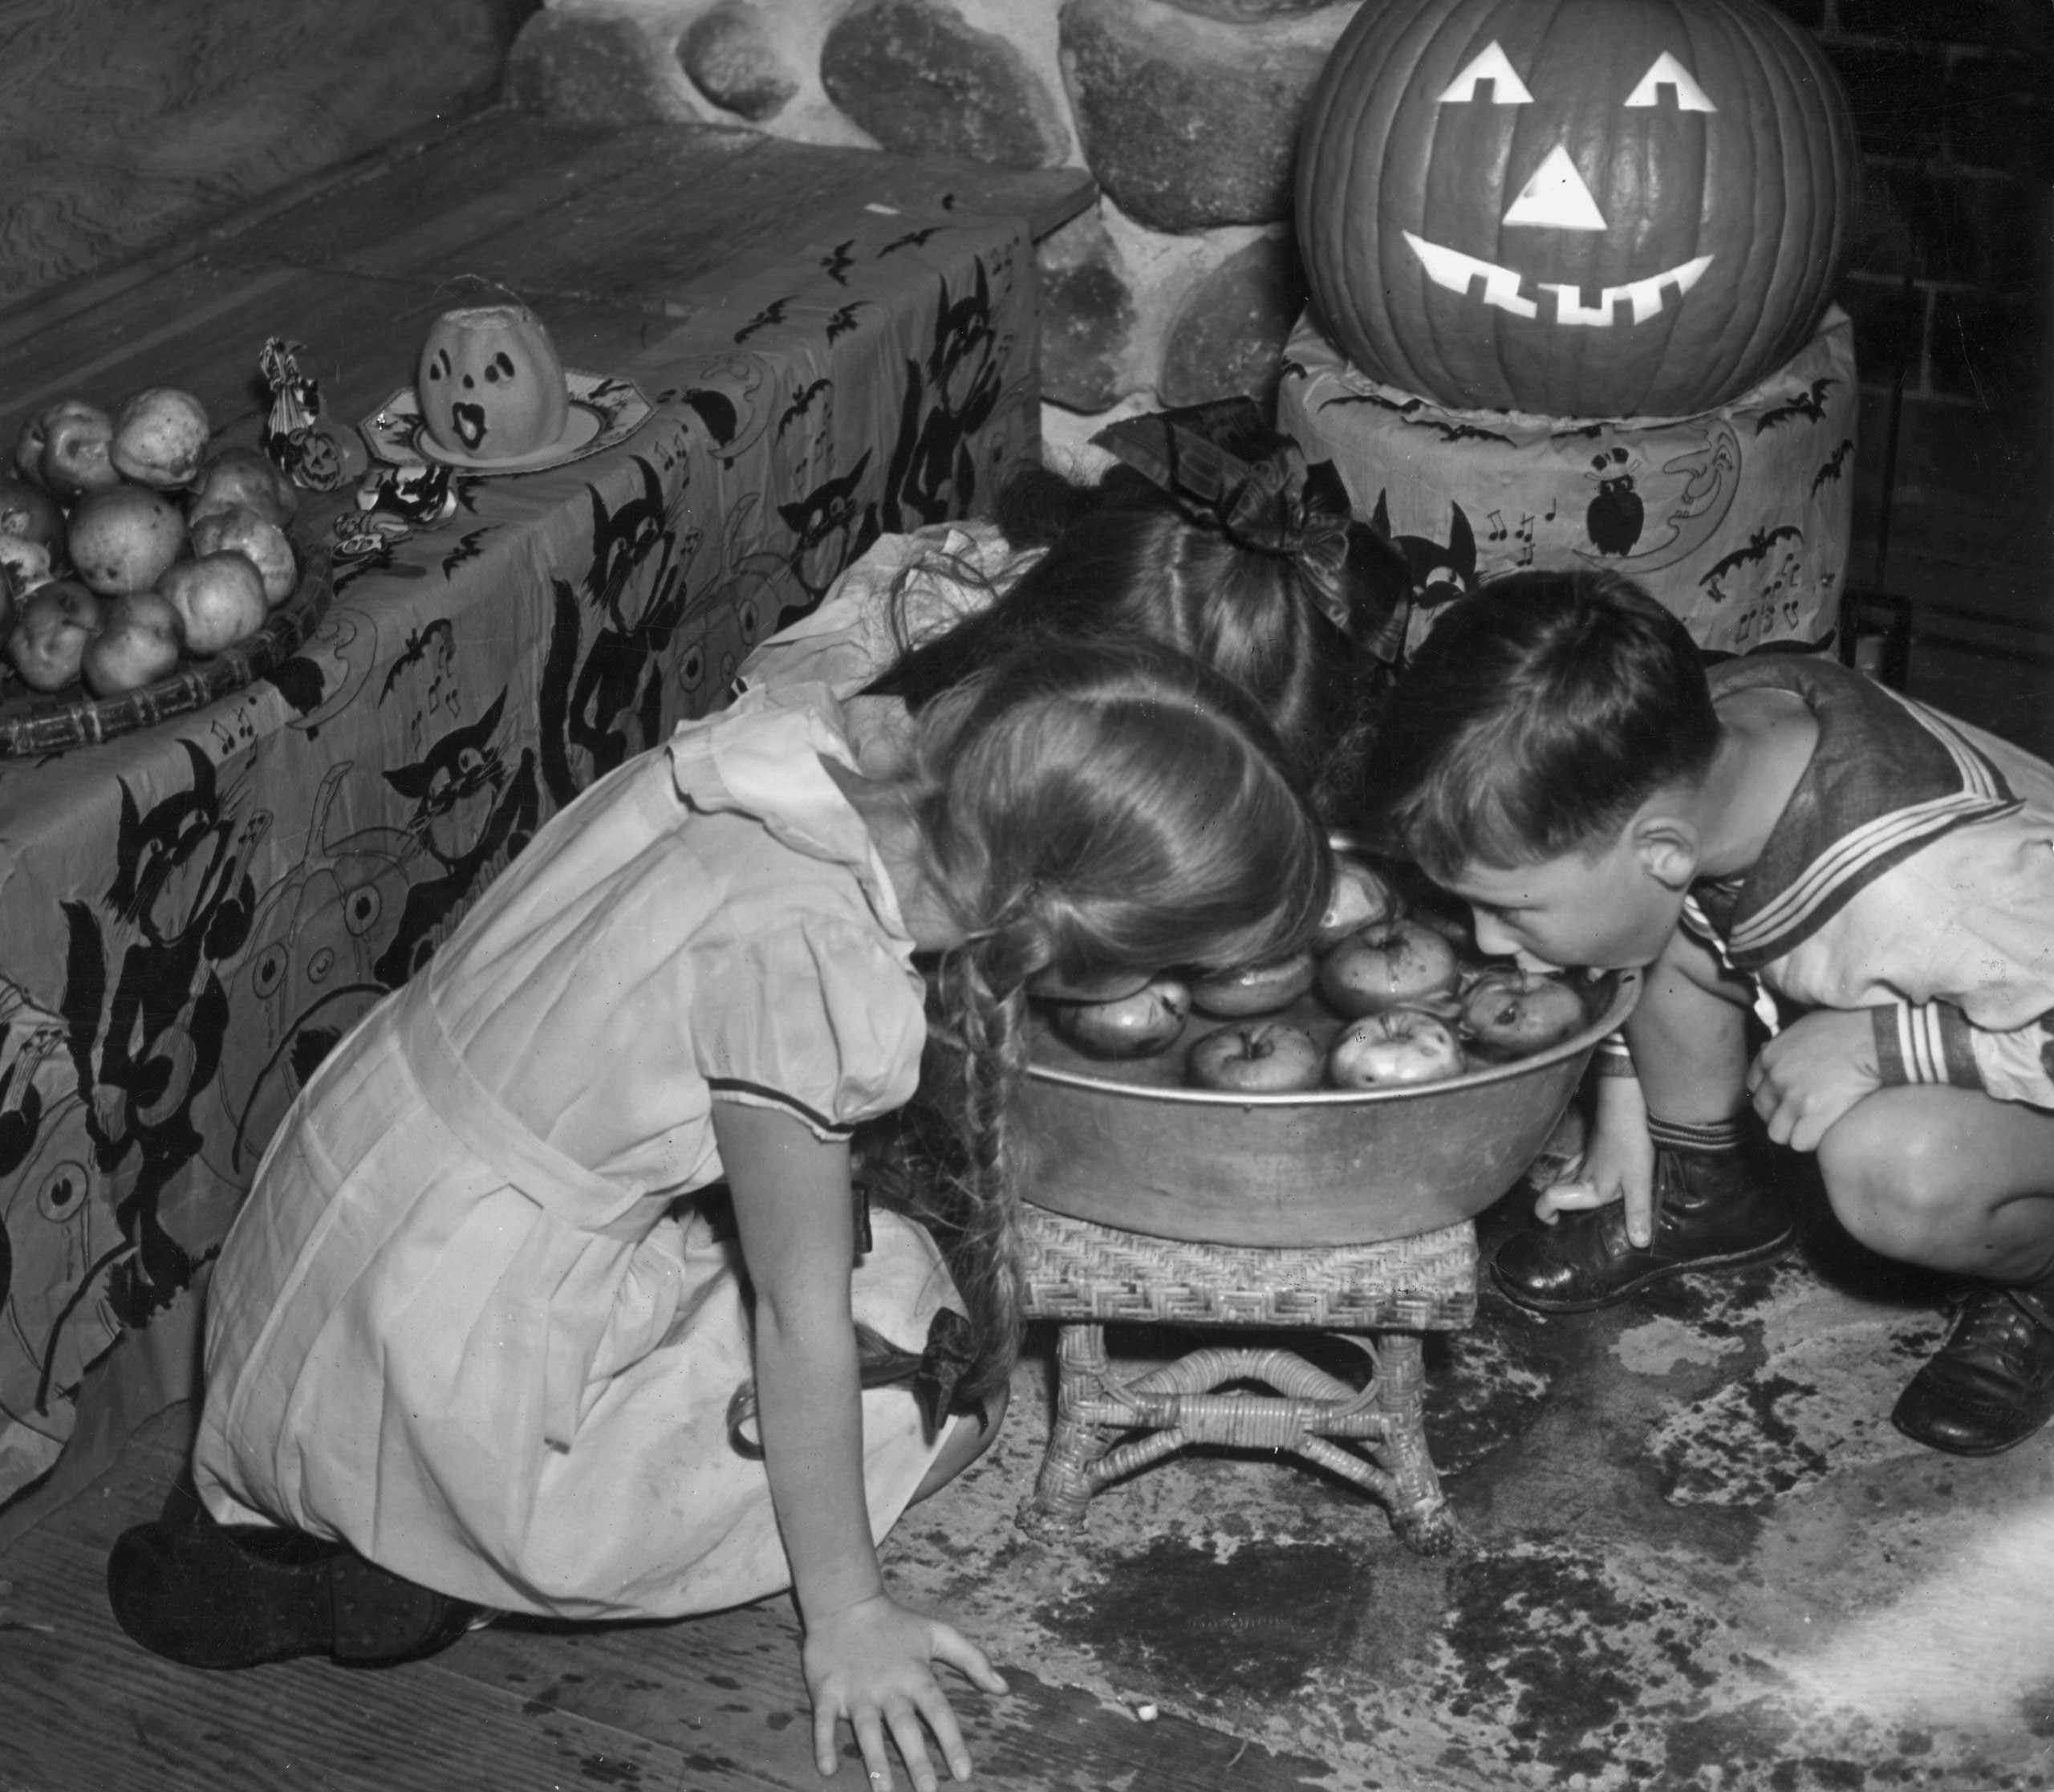 A young boy and girl crouch and bob for apples on Halloween circa 1935.